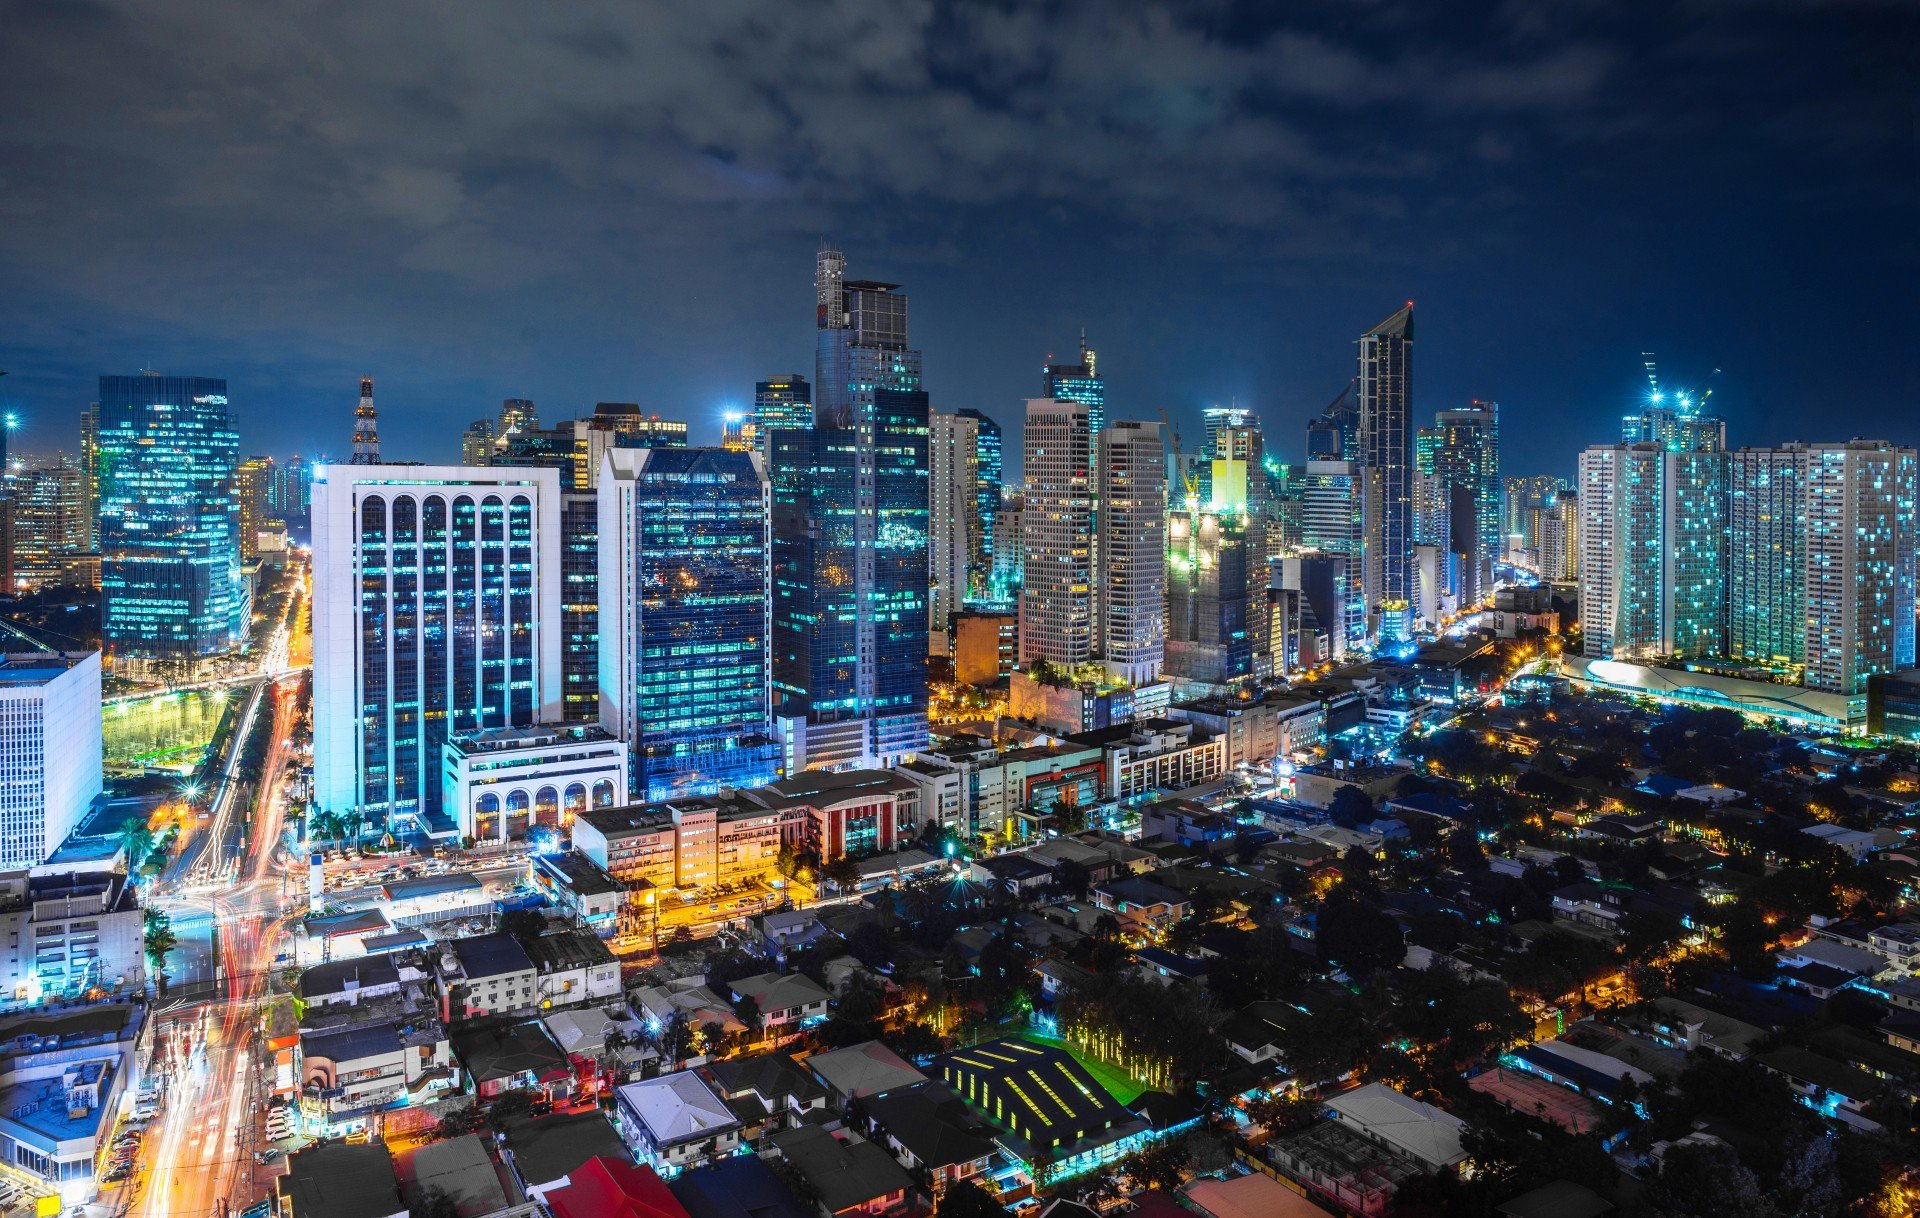 According to Banko Sentral ng Pilipinas (BSP) Governor Benjamin E. Diokno, digital banks will play an important role in the digital financial ecosystem in the Philippines